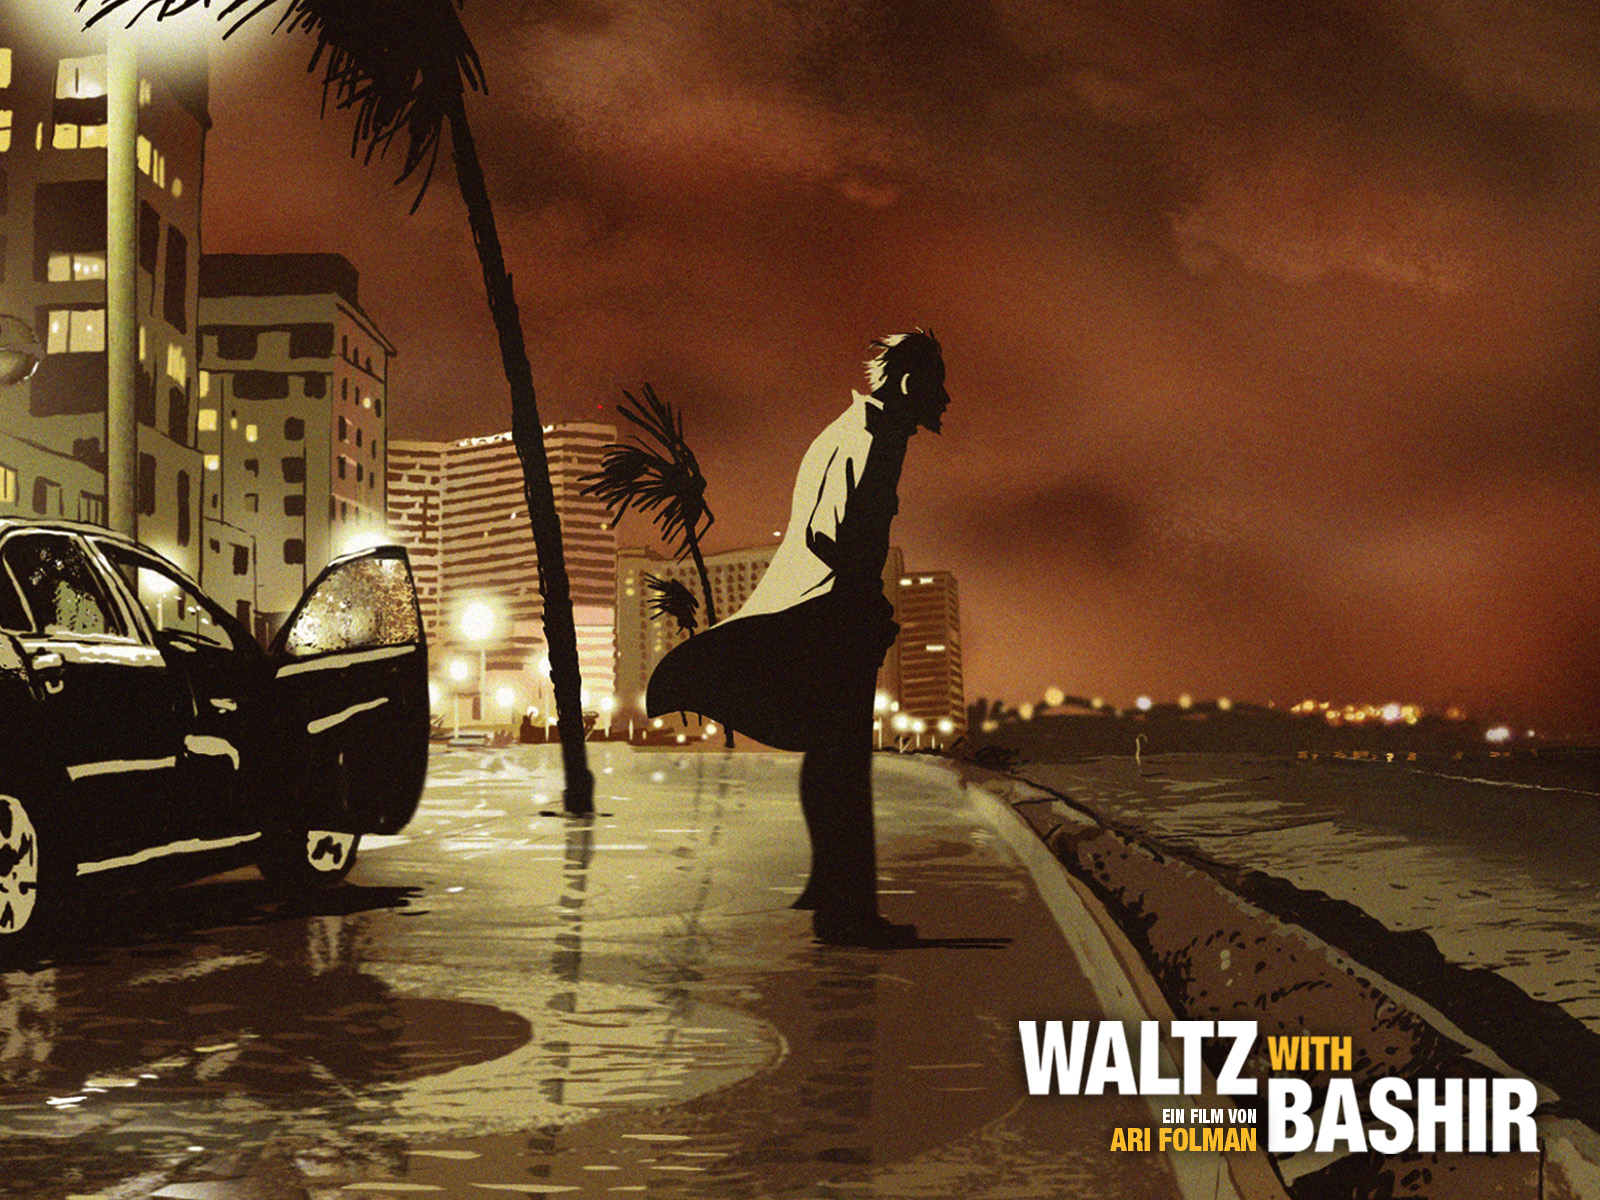 Vals con Bashir, wallpaper